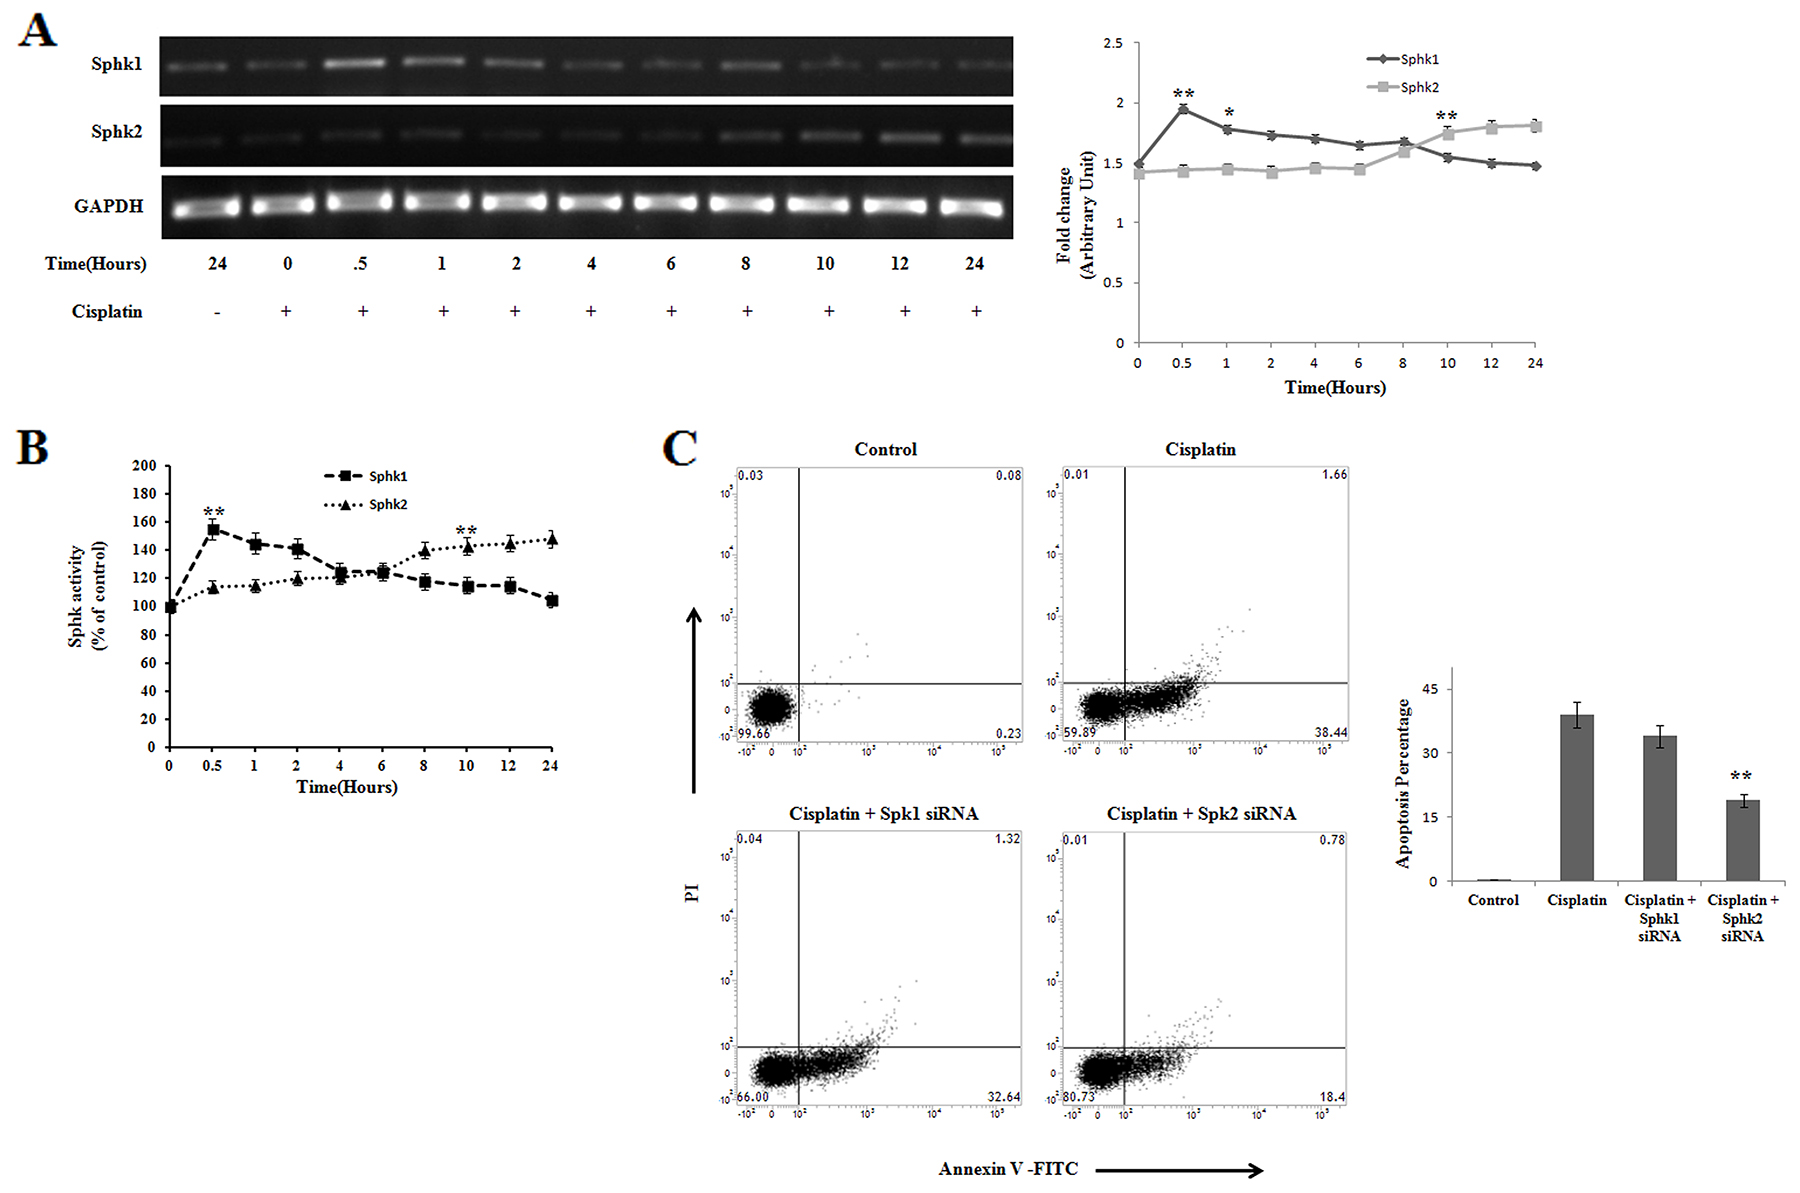 Reciprocal regulation of Sphingosine kinase 1 and Sphingosine kinase 2 on cisplatin treated PKCδ silenced B16F10 melanoma cells.